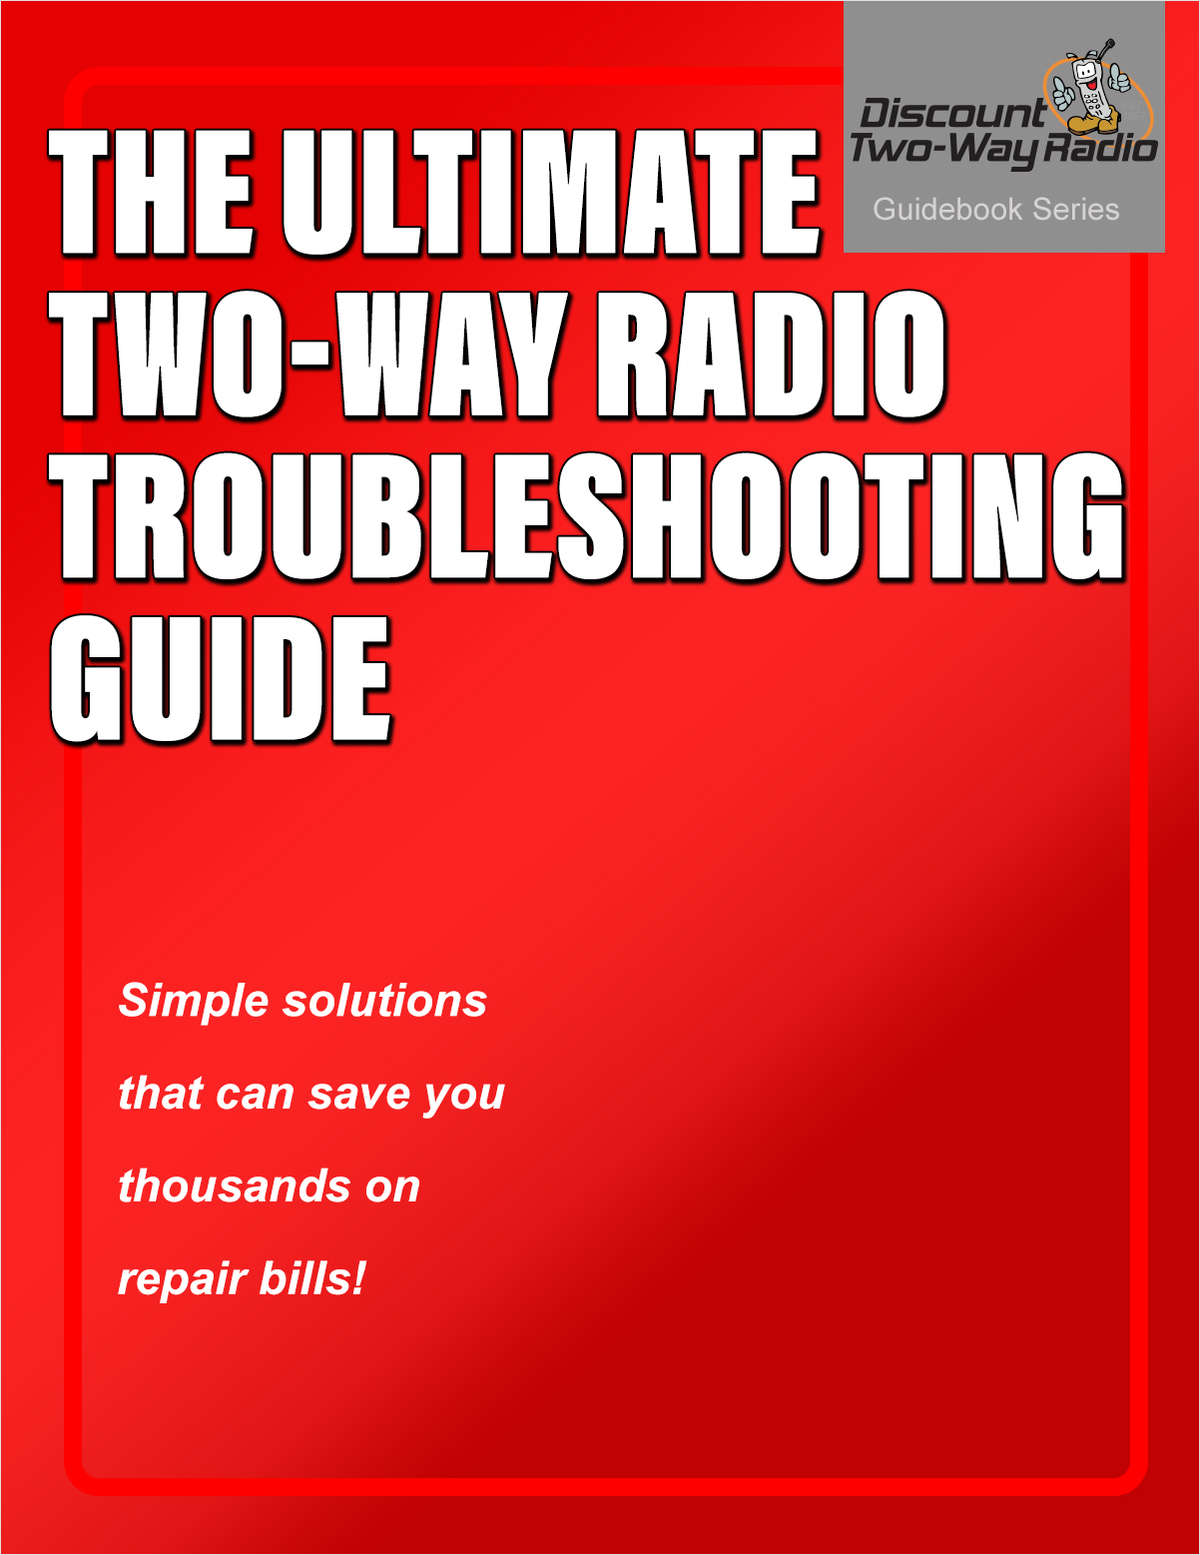 The Ultimate Two-Way Radio Troubleshooting Guide